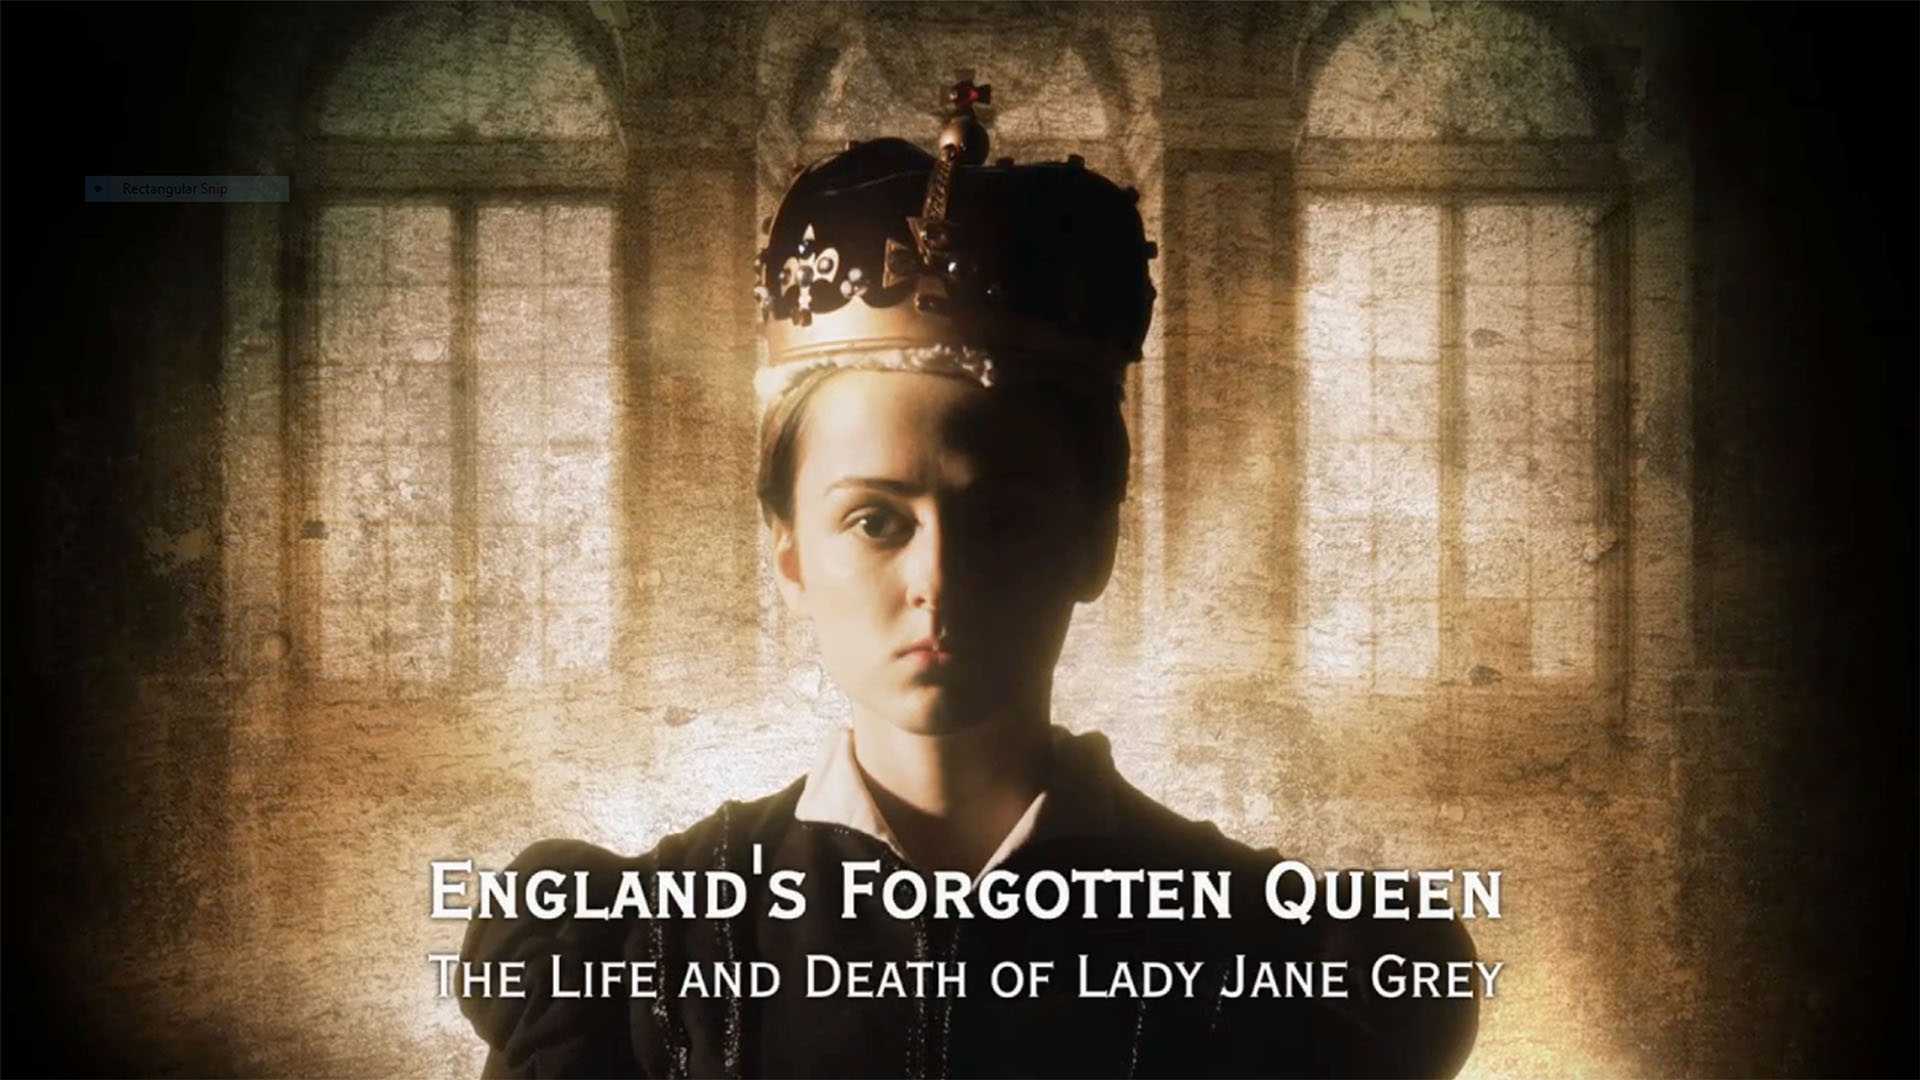 England's Forgotten Queen: The Life And Death of Lady Jane Gray